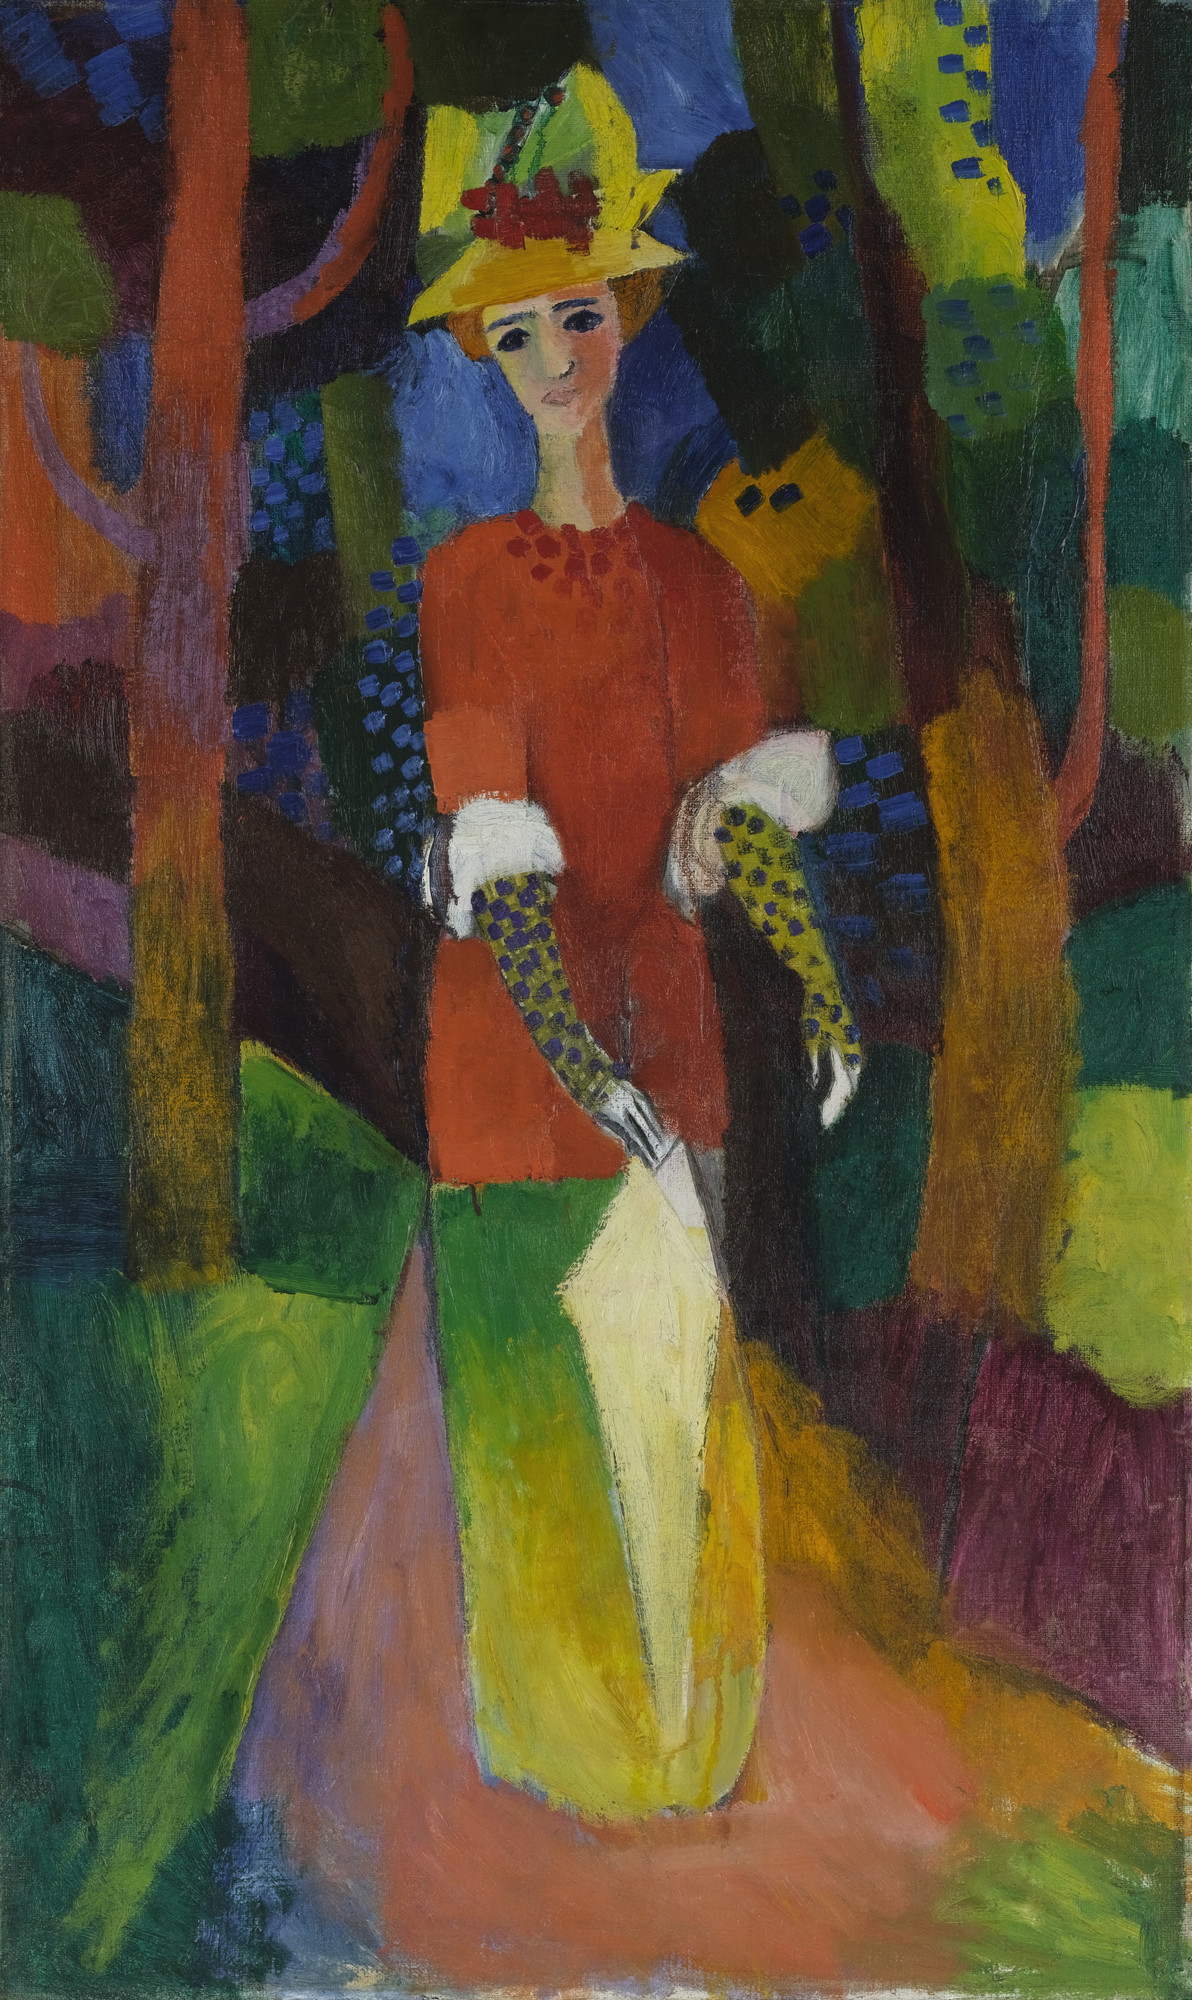 August Macke. Lady in a Park. July 1914